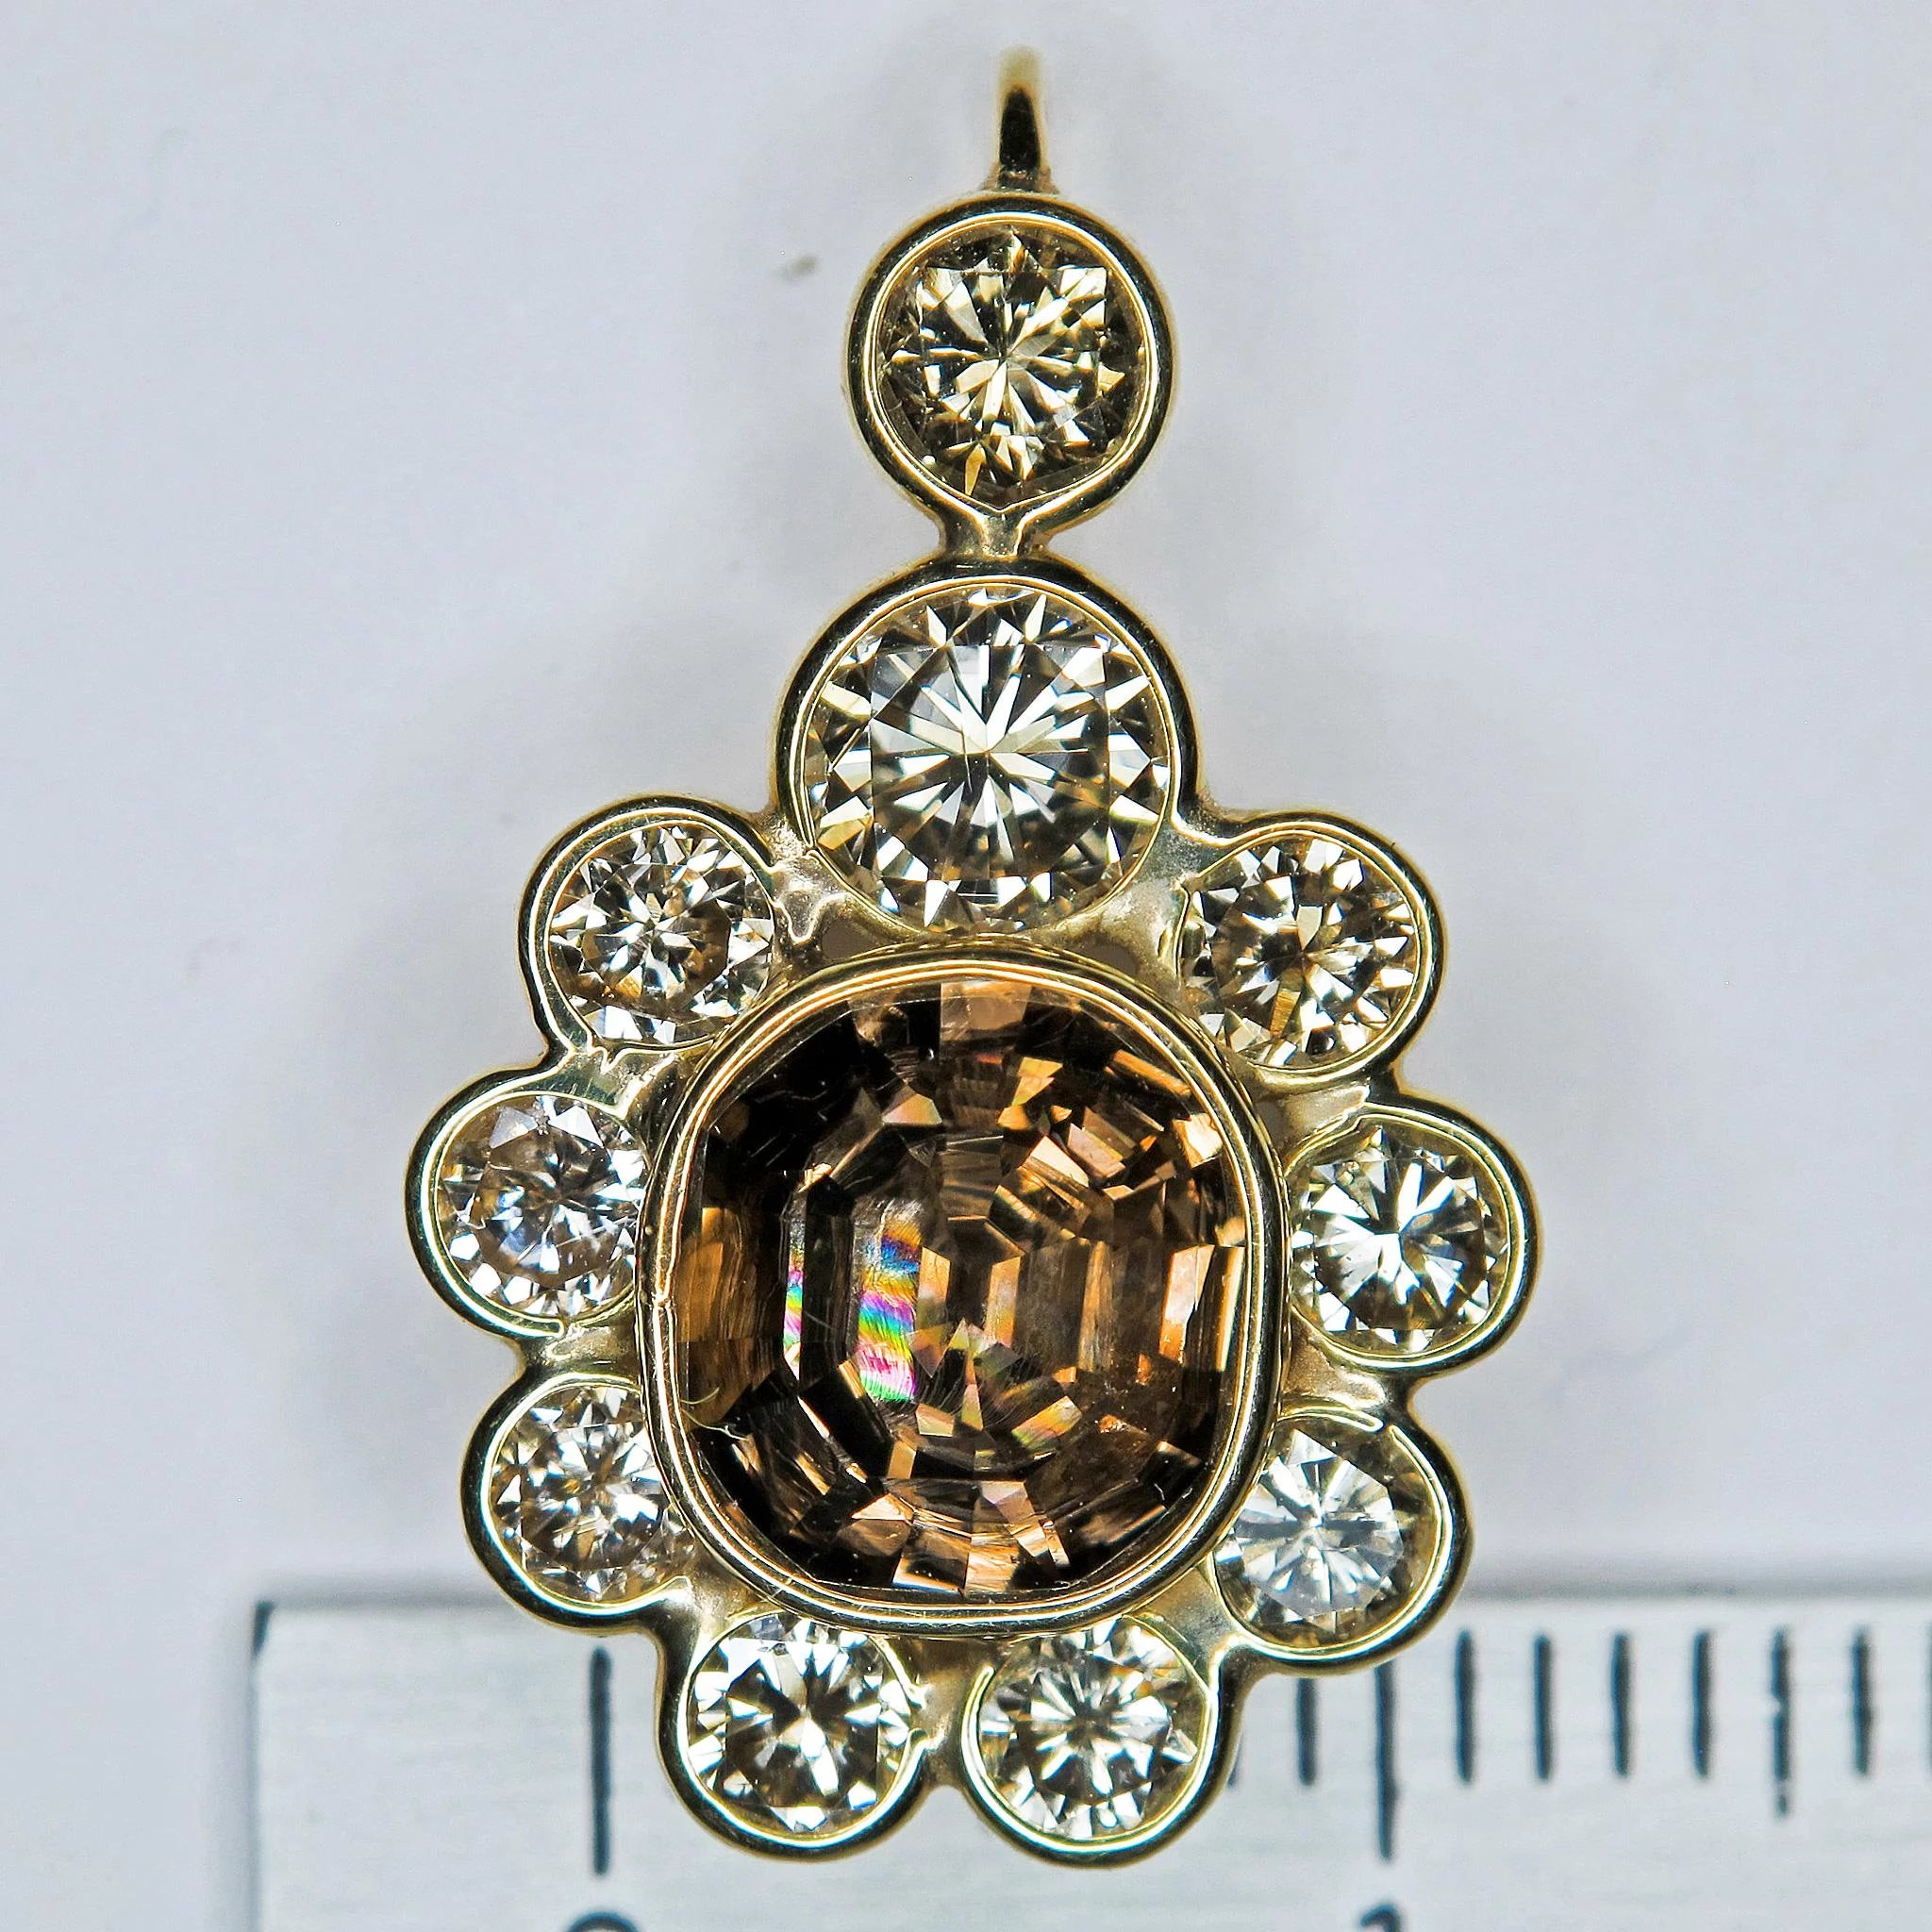 558cc85a9 Fancy Color, Modified Step-Cut, Cushion Shape Diamond, 18K Gold Pendant w.  Click to expand